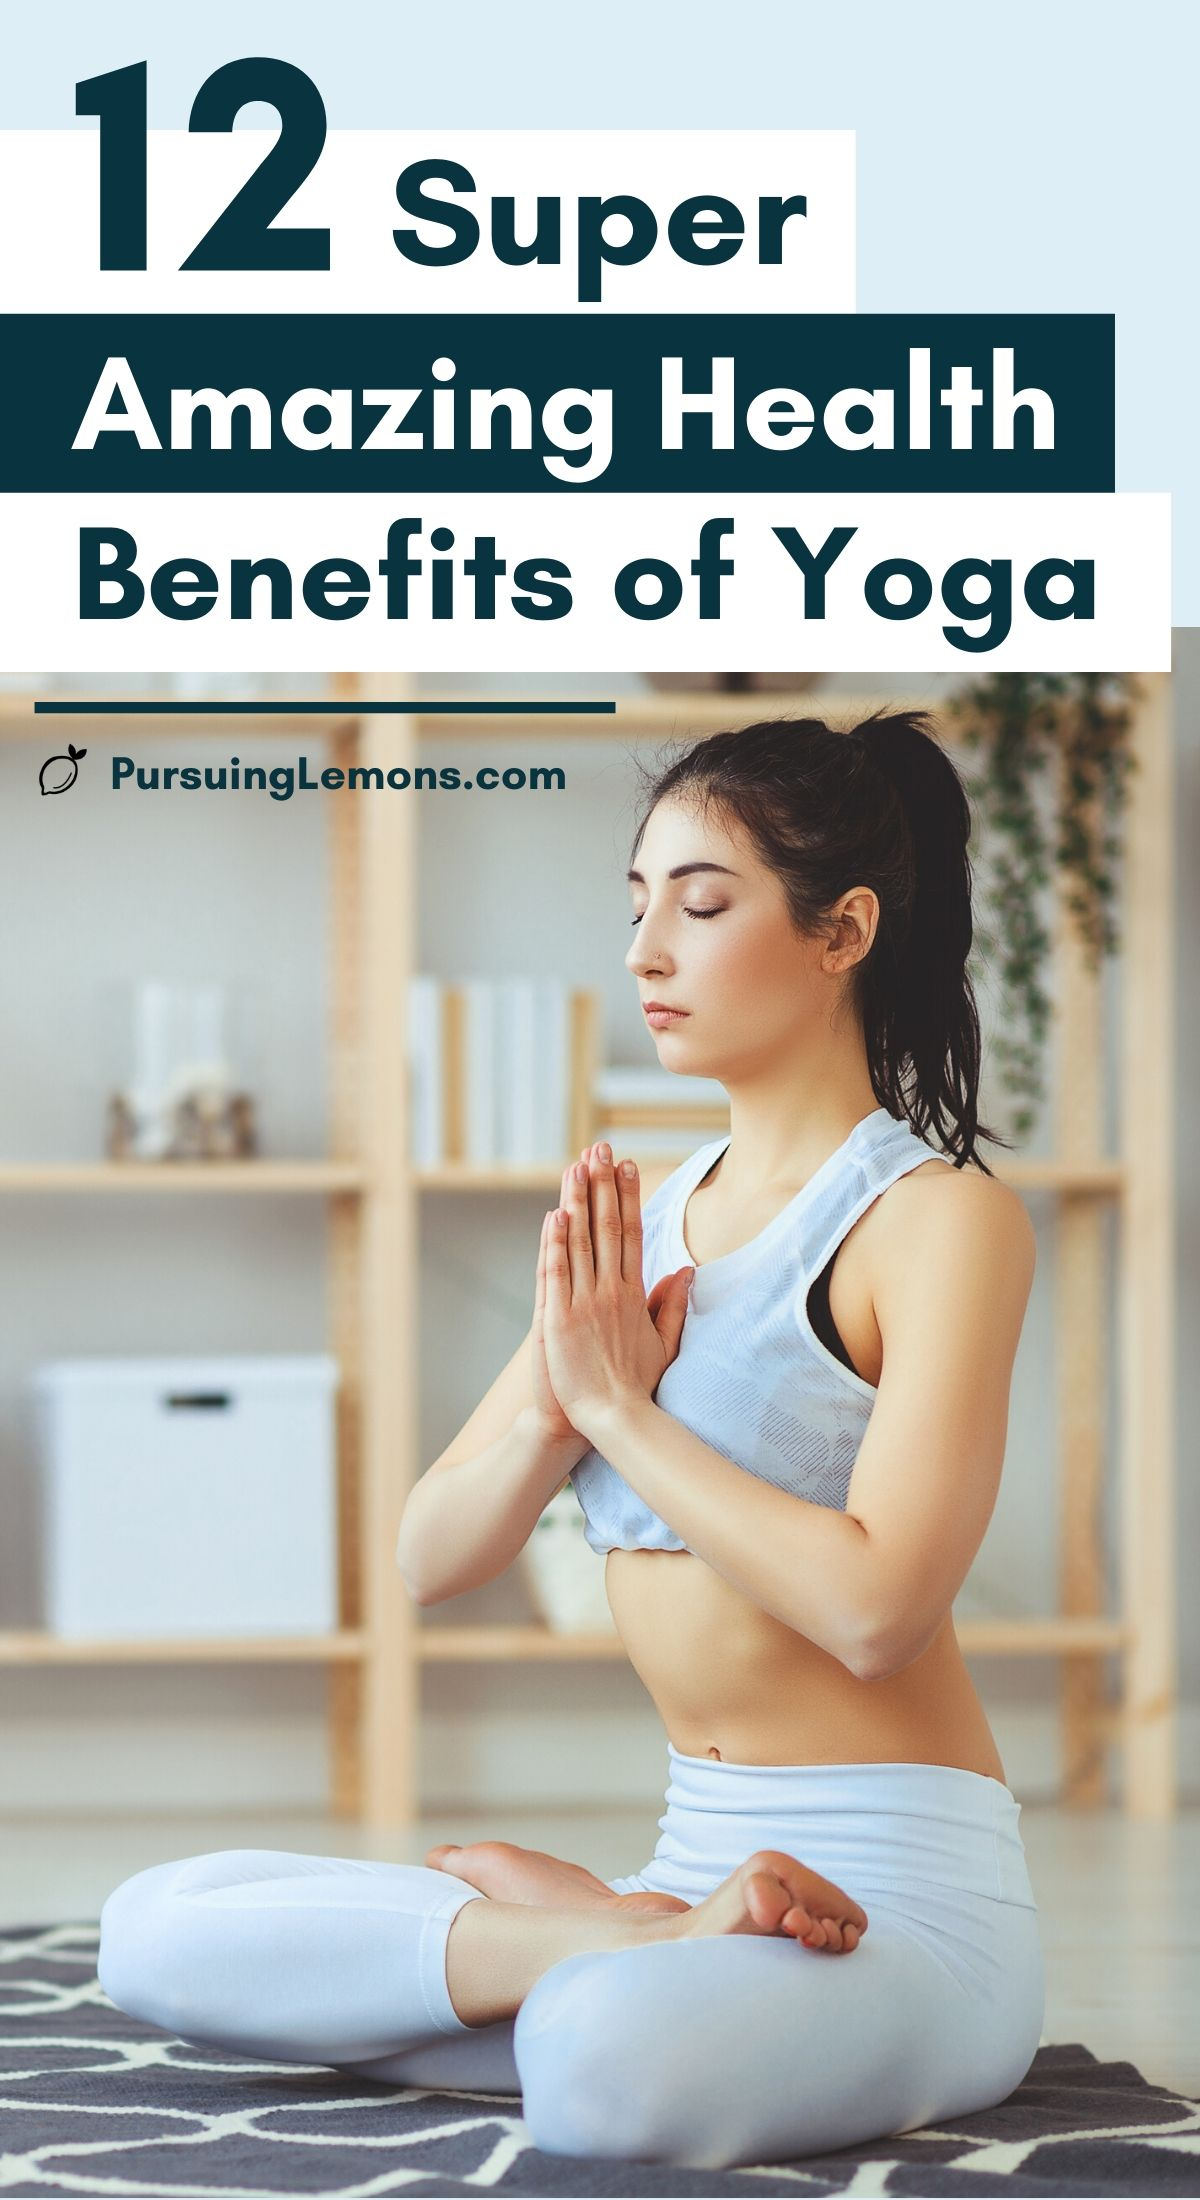 12 Super Amazing Health Benefits of Yoga | Yoga will transform your health in many different ways. Practicing yoga poses (asanas), meditation and breathing techniques will improve your physical health, body awareness and mindfulness. Here are 12 health benefits of yoga on why you should consider practicing yoga daily! #yoga #yogabenefits #yogalifestyle